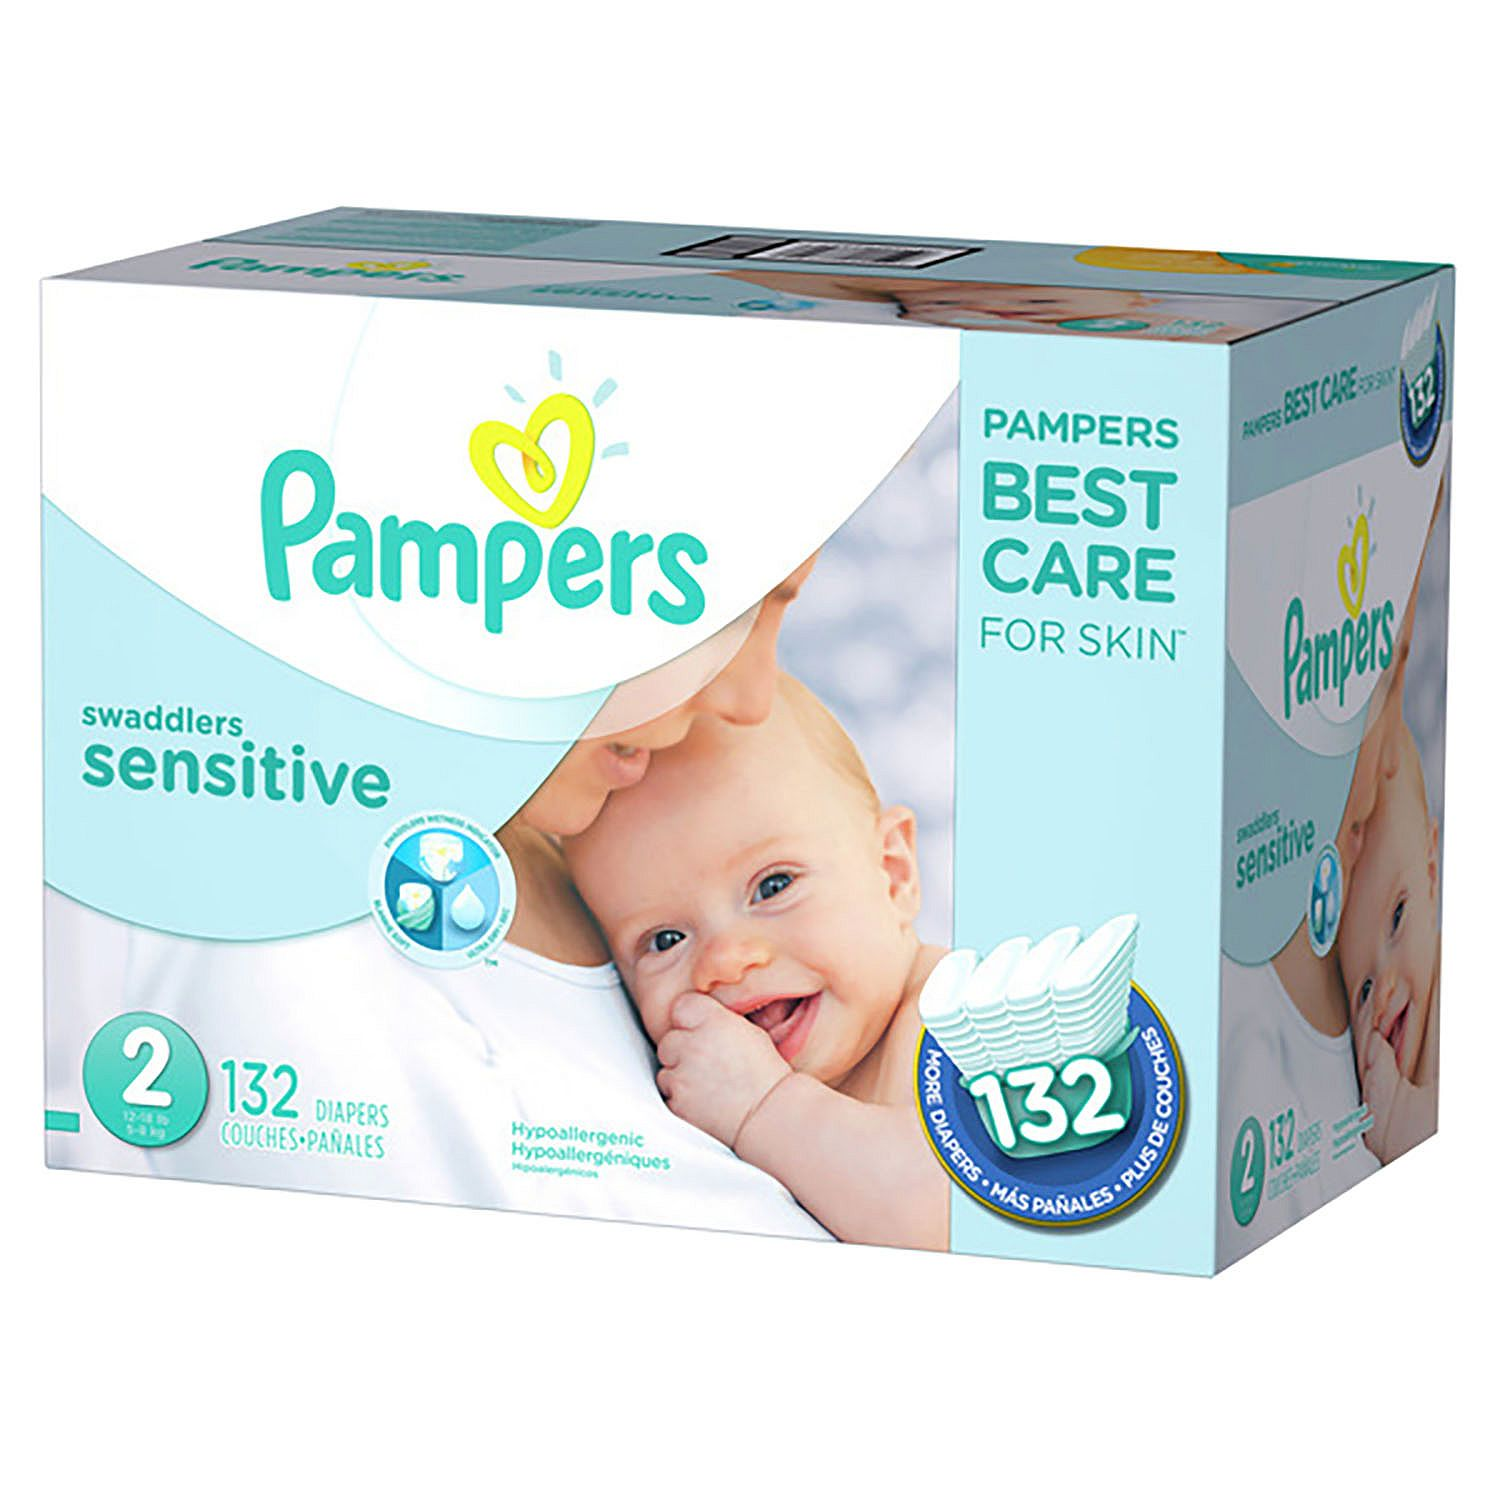 Pampers' Swaddlers Sensitive Diapers Size 2 - 132 ct. ( Weight 12- 18 lb.) - Bulk Qty, Free Shipping - Comfortable, Soft, No leaking & Good nite Diapers